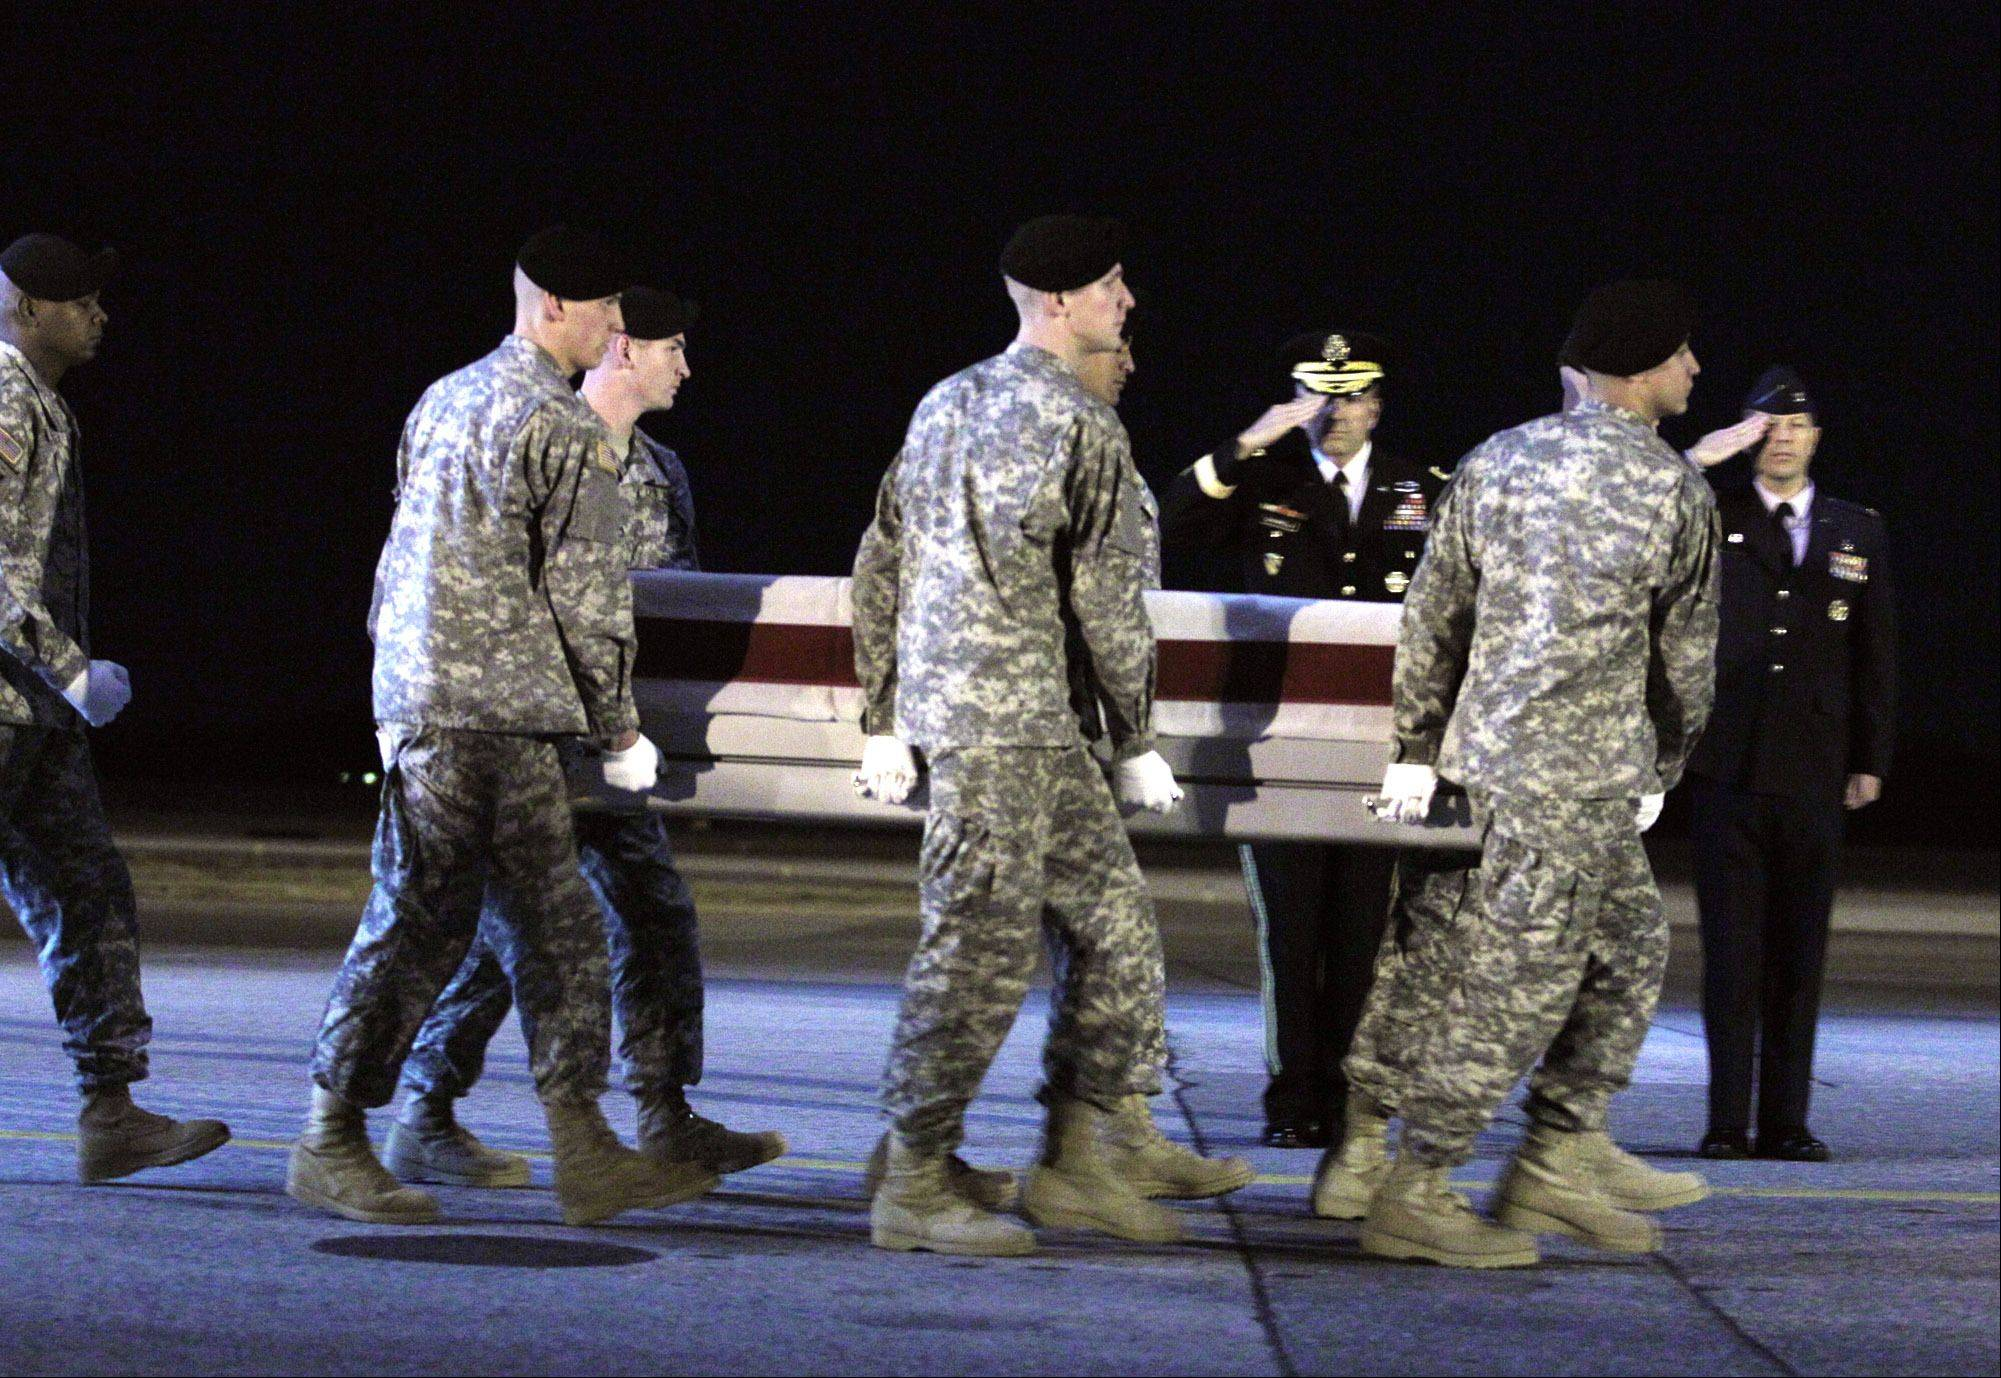 An Army carry team moves the transfer case containing the remains of Army Spc. Christopher Patterson of North Aurora upon arrival at Dover Air Force Base Sunday.